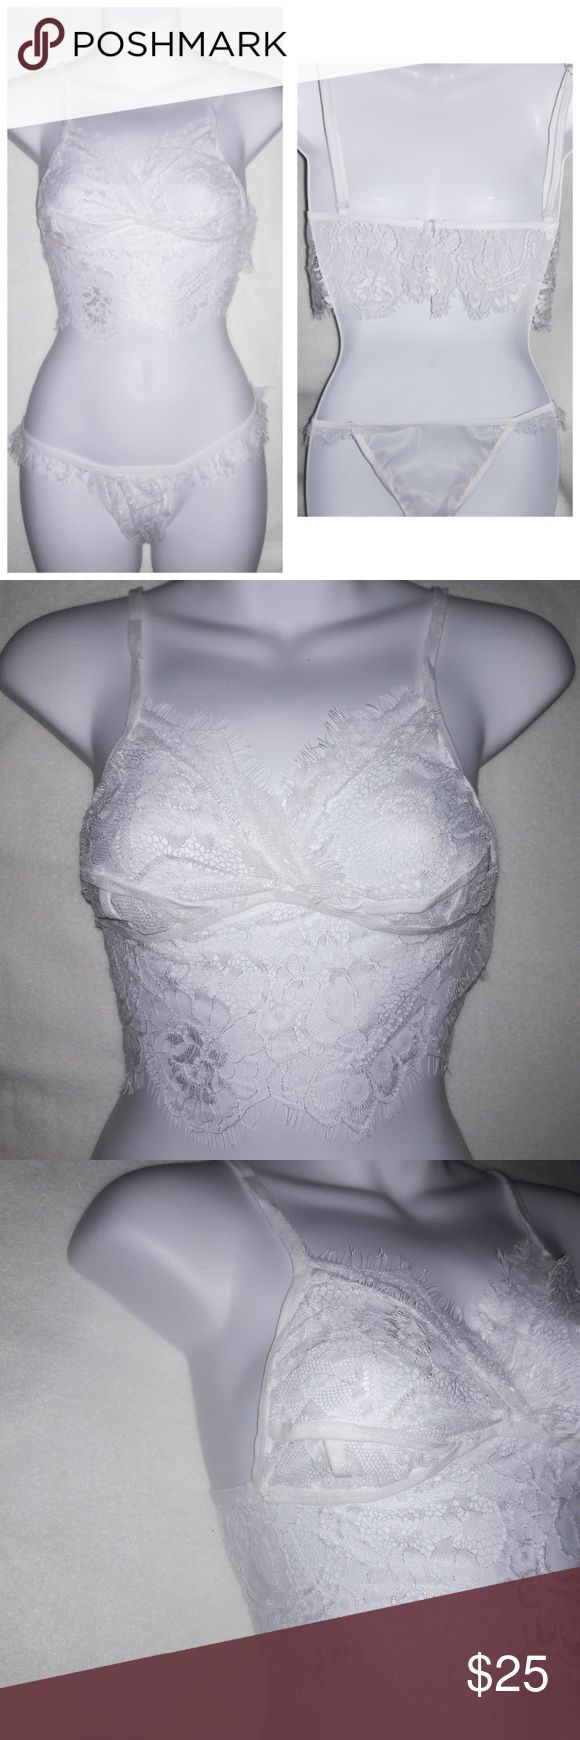 Sheer Floral Eyelash Lace Bralette & Panty Set Absolutely stunning! Sheer, stretchy, and soft lace make up this pretty set. The wire free top has adjustable straps and a slide hook clasp at the back. The stretchy matching panty has eyelash lace trim and mesh back.True to size however I recommend a C cup maximum. Hand wash lay flat to dry. Intimates & Sleepwear Bandeaus